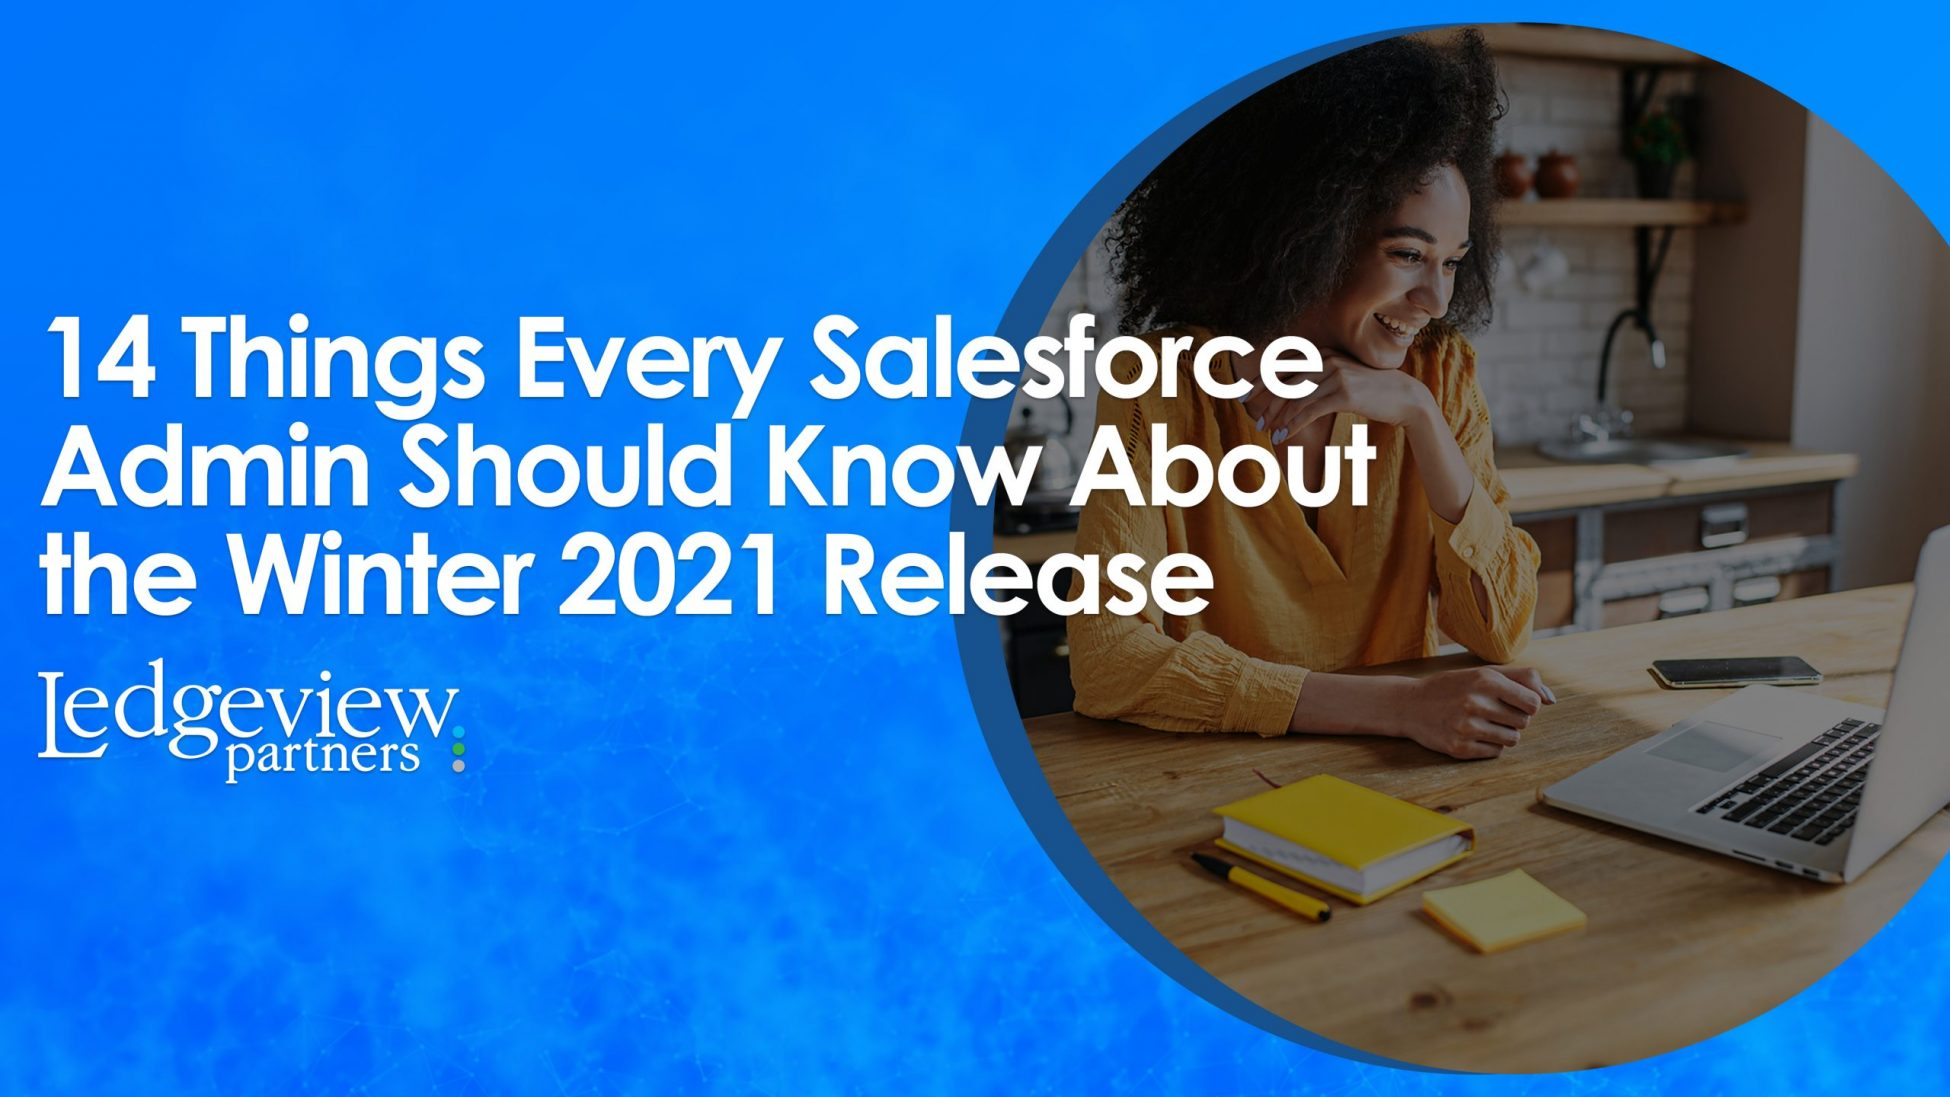 14 Things Every Salesforce Admin Should Know About the Winter 2021 Release